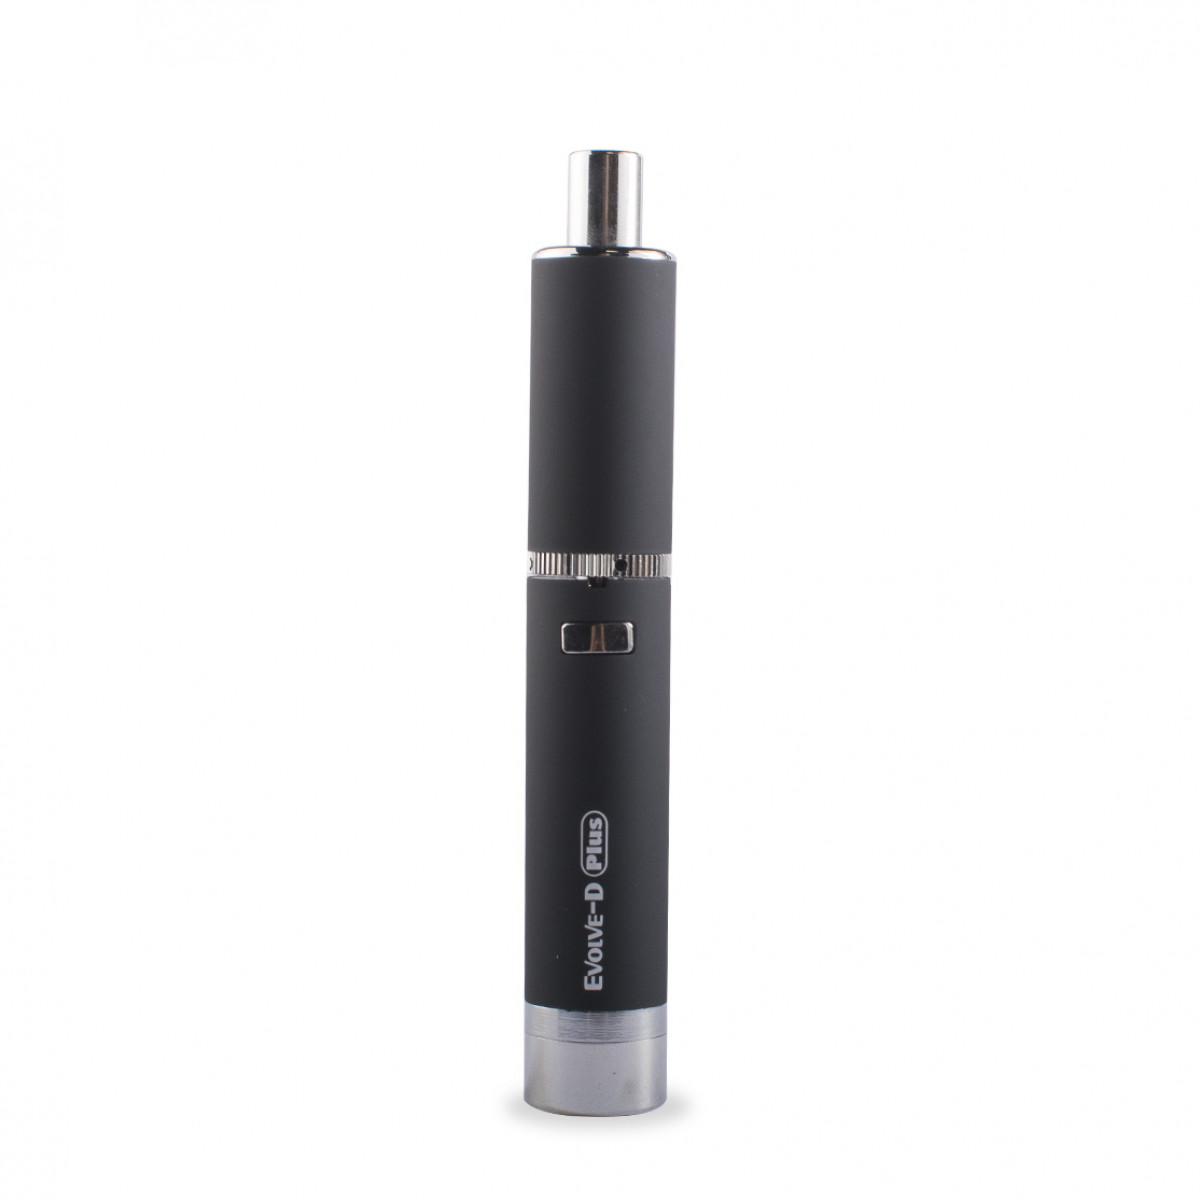 Evolve D Plus Dry Herb Vaporizer by Yocan